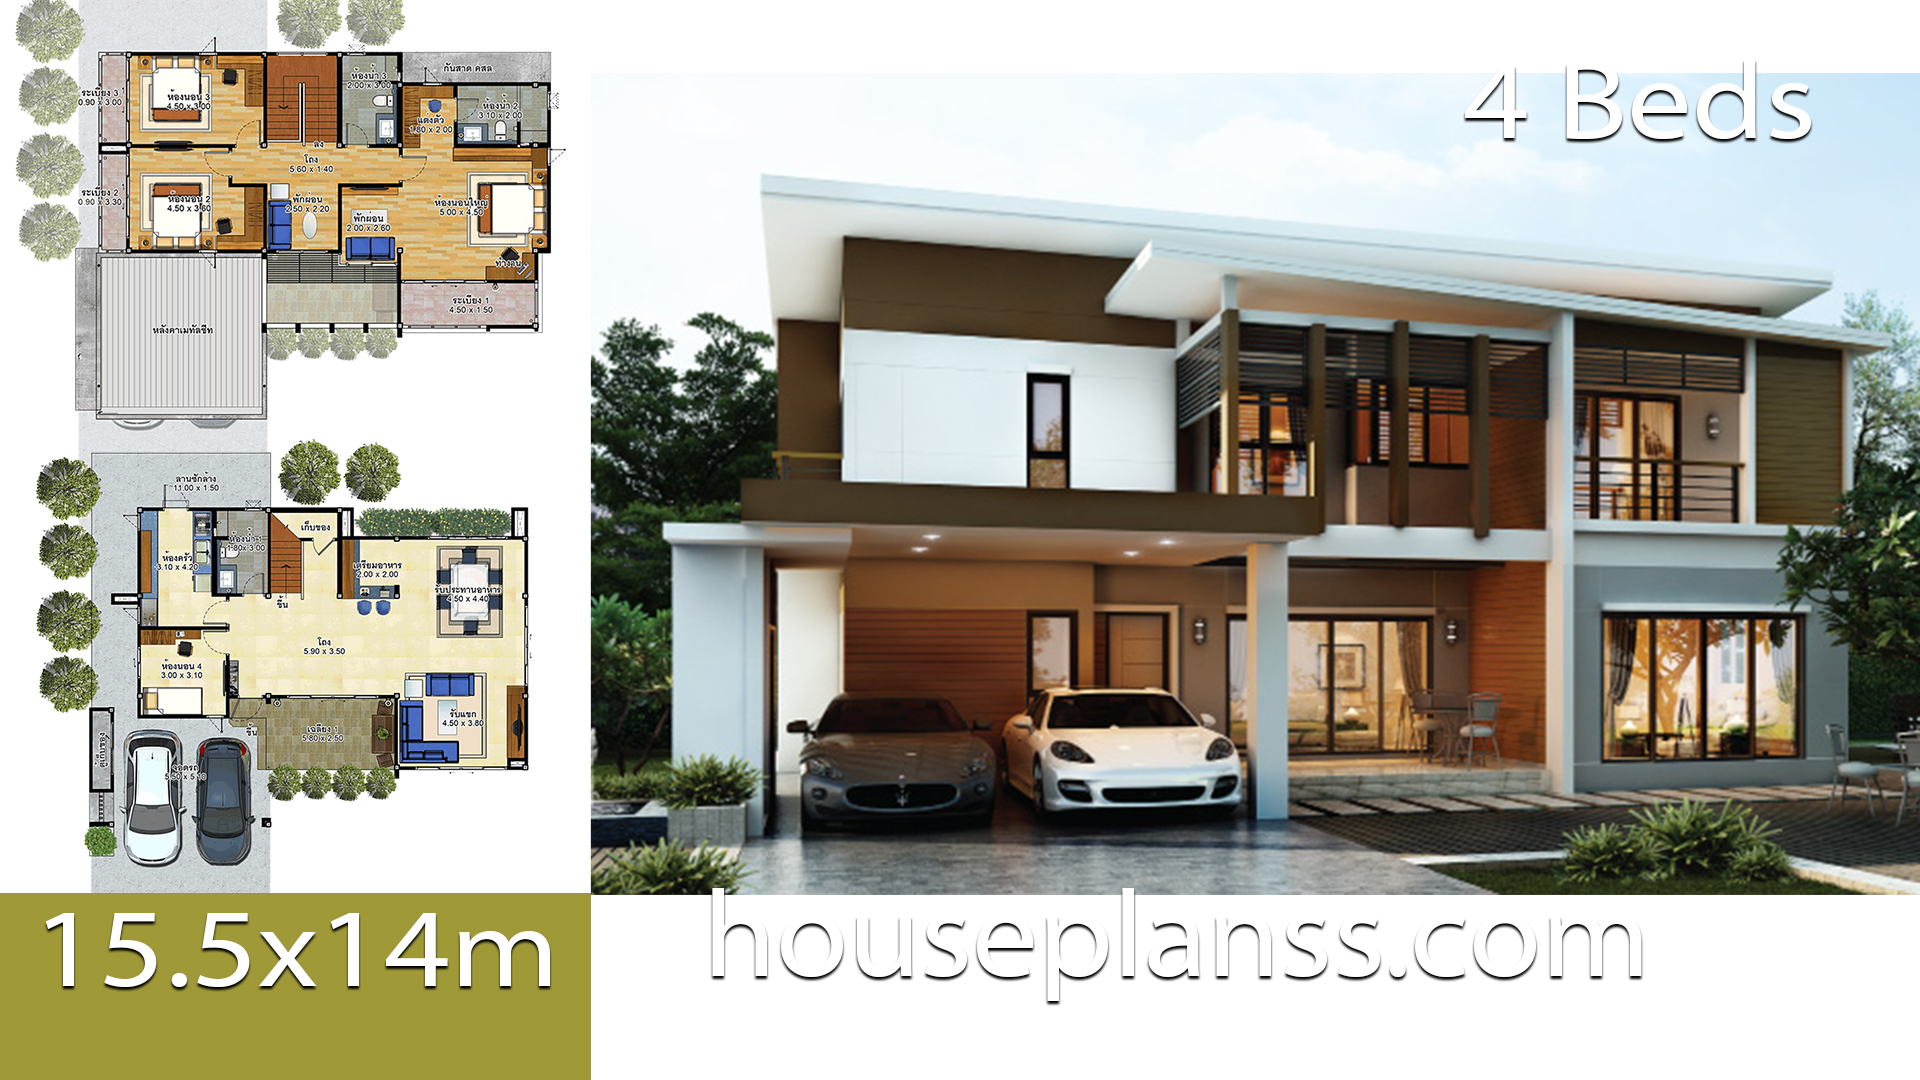 House design idea 15.5×14 with 4 bedrooms